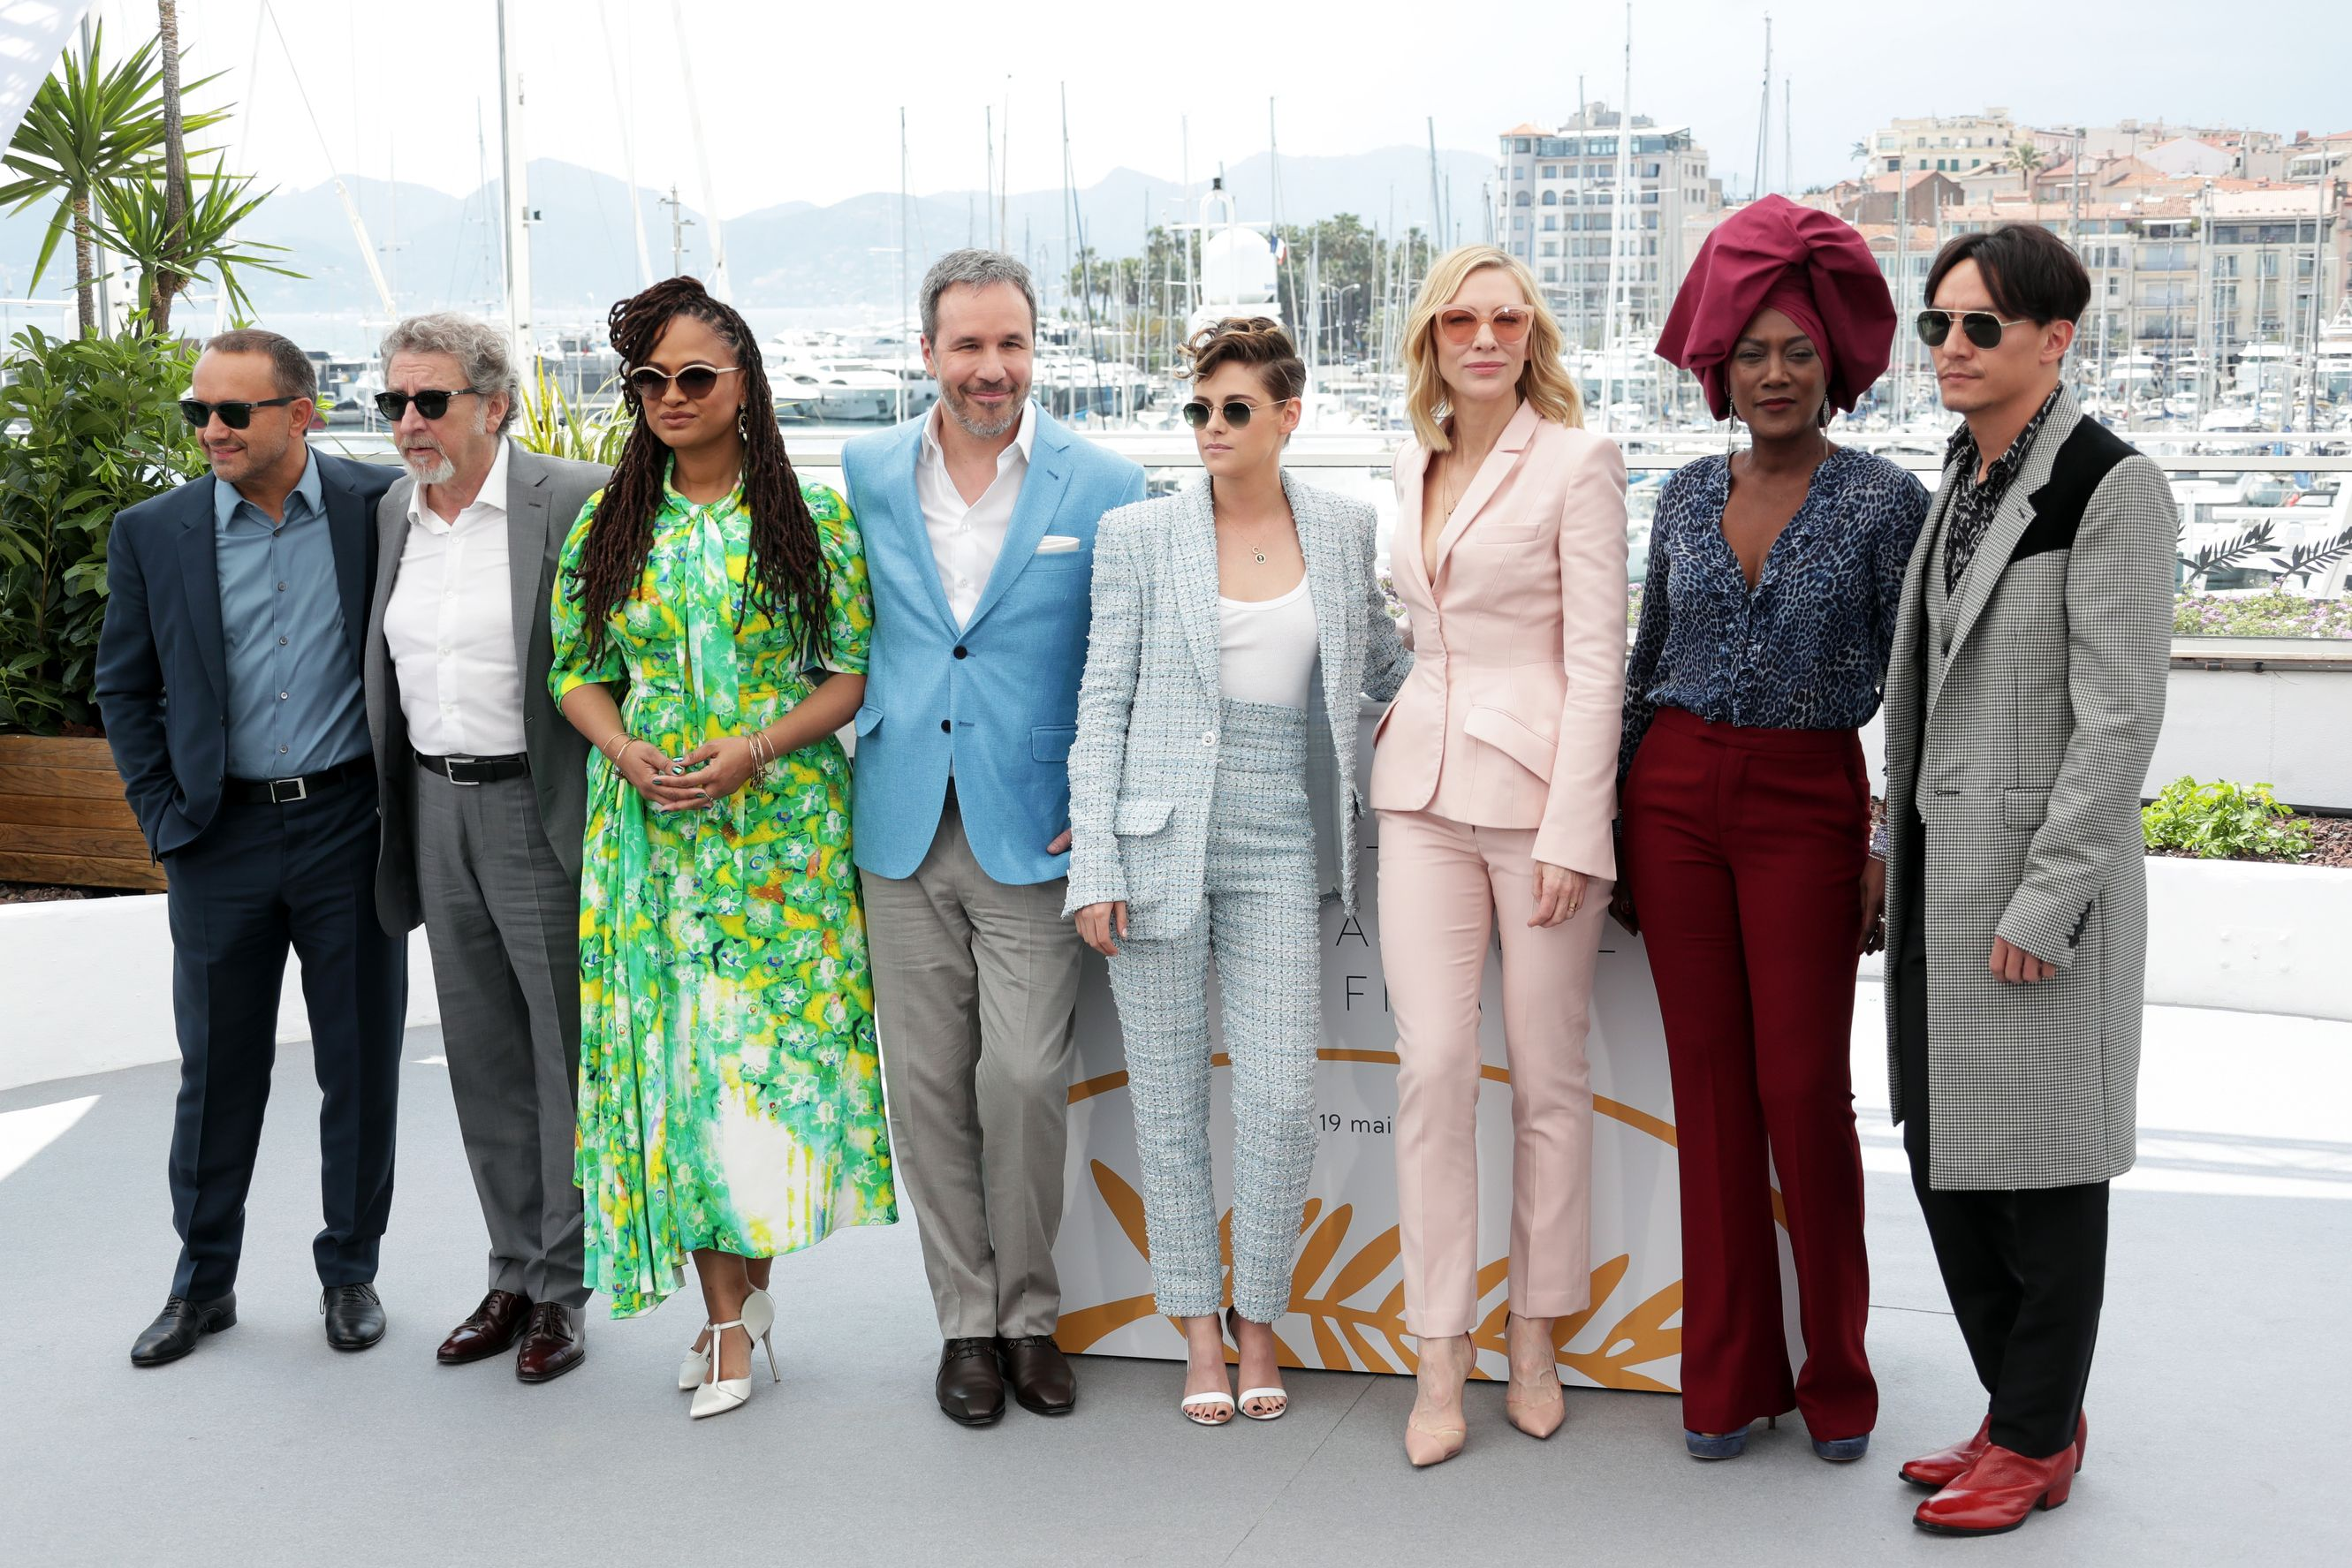 WOMandatory Credit: Photo by Canio Romaniello/Soevermedia/REX/Shutterstock (9665549p) Andrey Zvyagintsev, Robert Guediguian, Ava Duvernay, Denis Villeneuve, Kristen Stewart, Cate Blanchett, Khadja Nin, Chang Chen Photocall of the official jury, 71st Cannes Festival 2018, Cannes, France - 08 May 2018